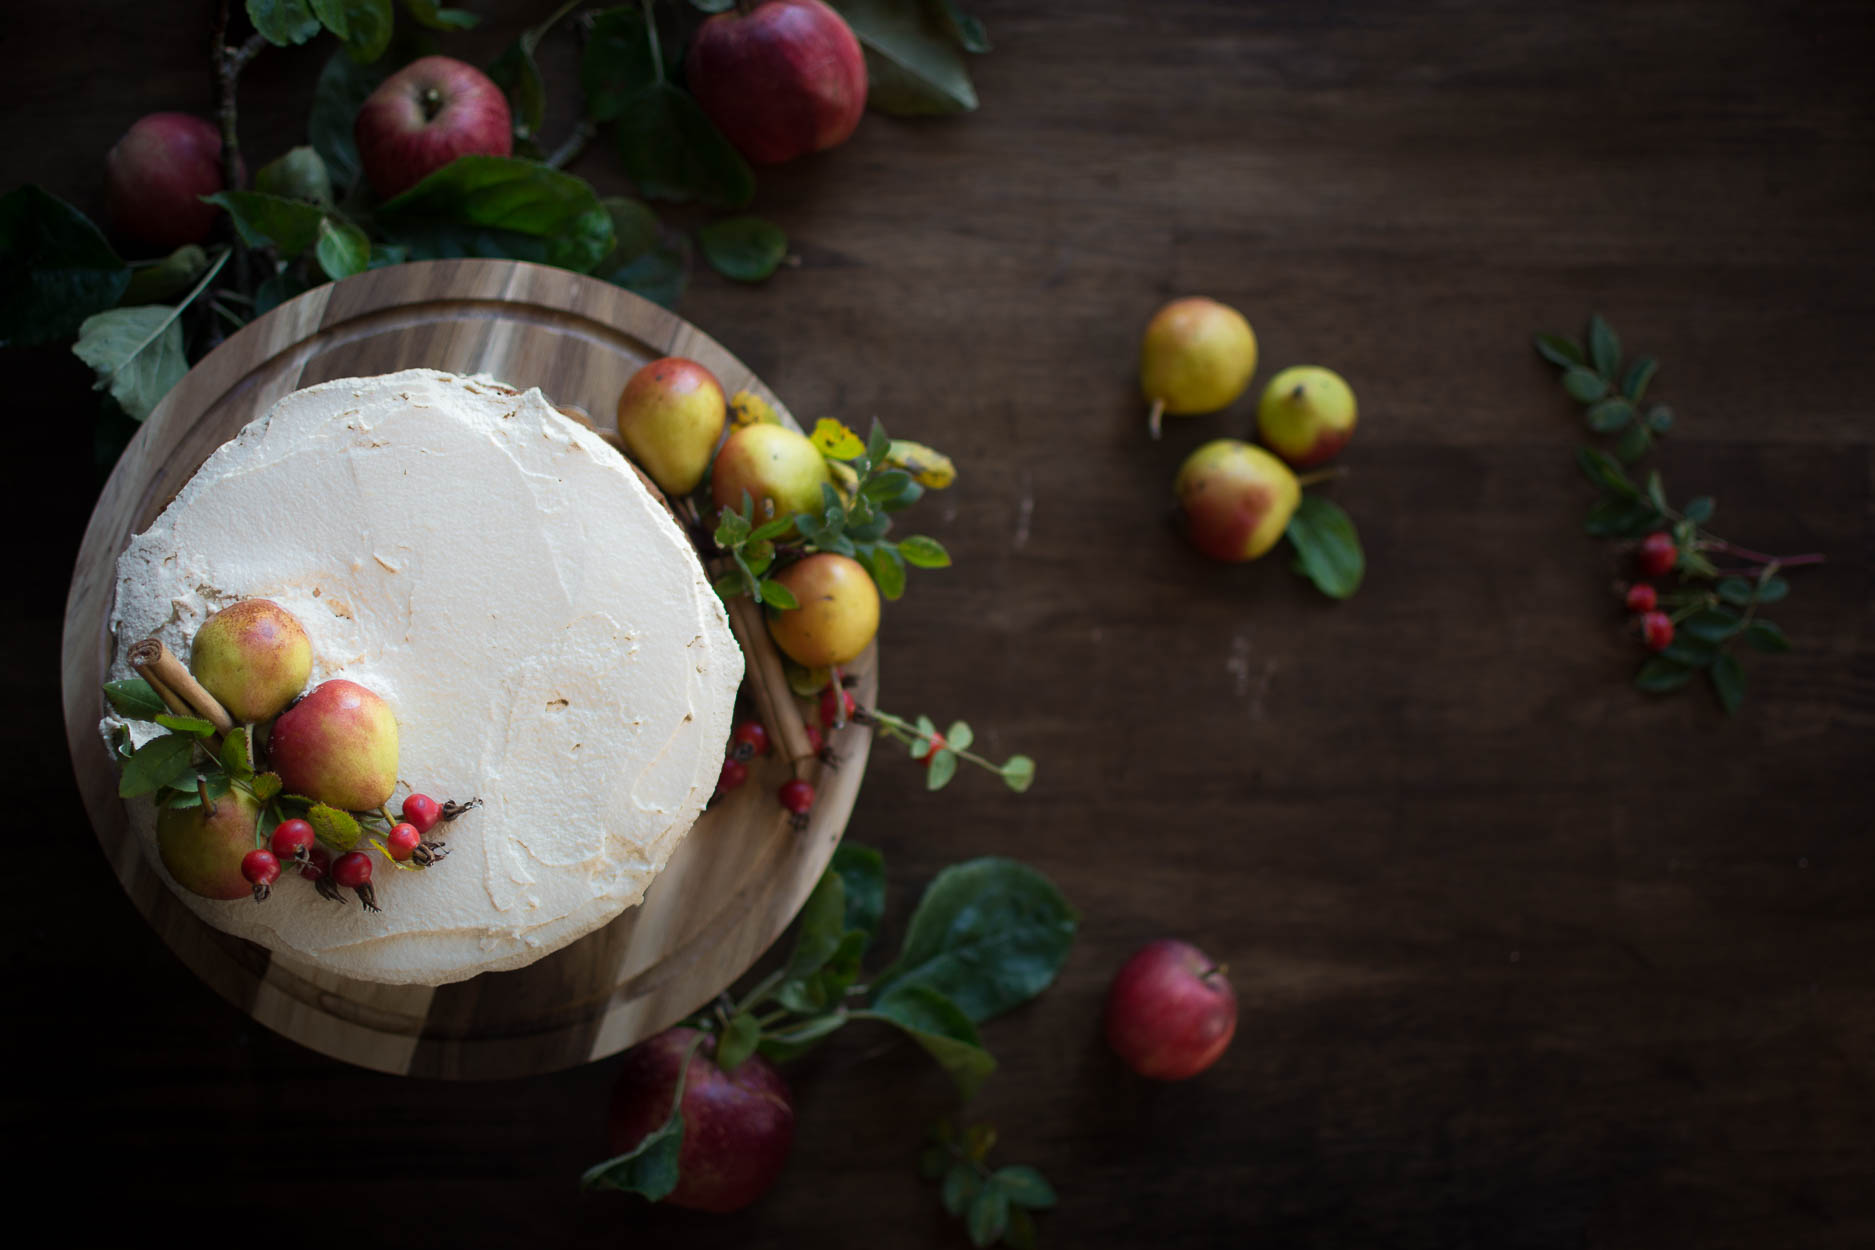 Harvest Cake with Maple Frosting decorated with apples, pears and cinnamon sticks.